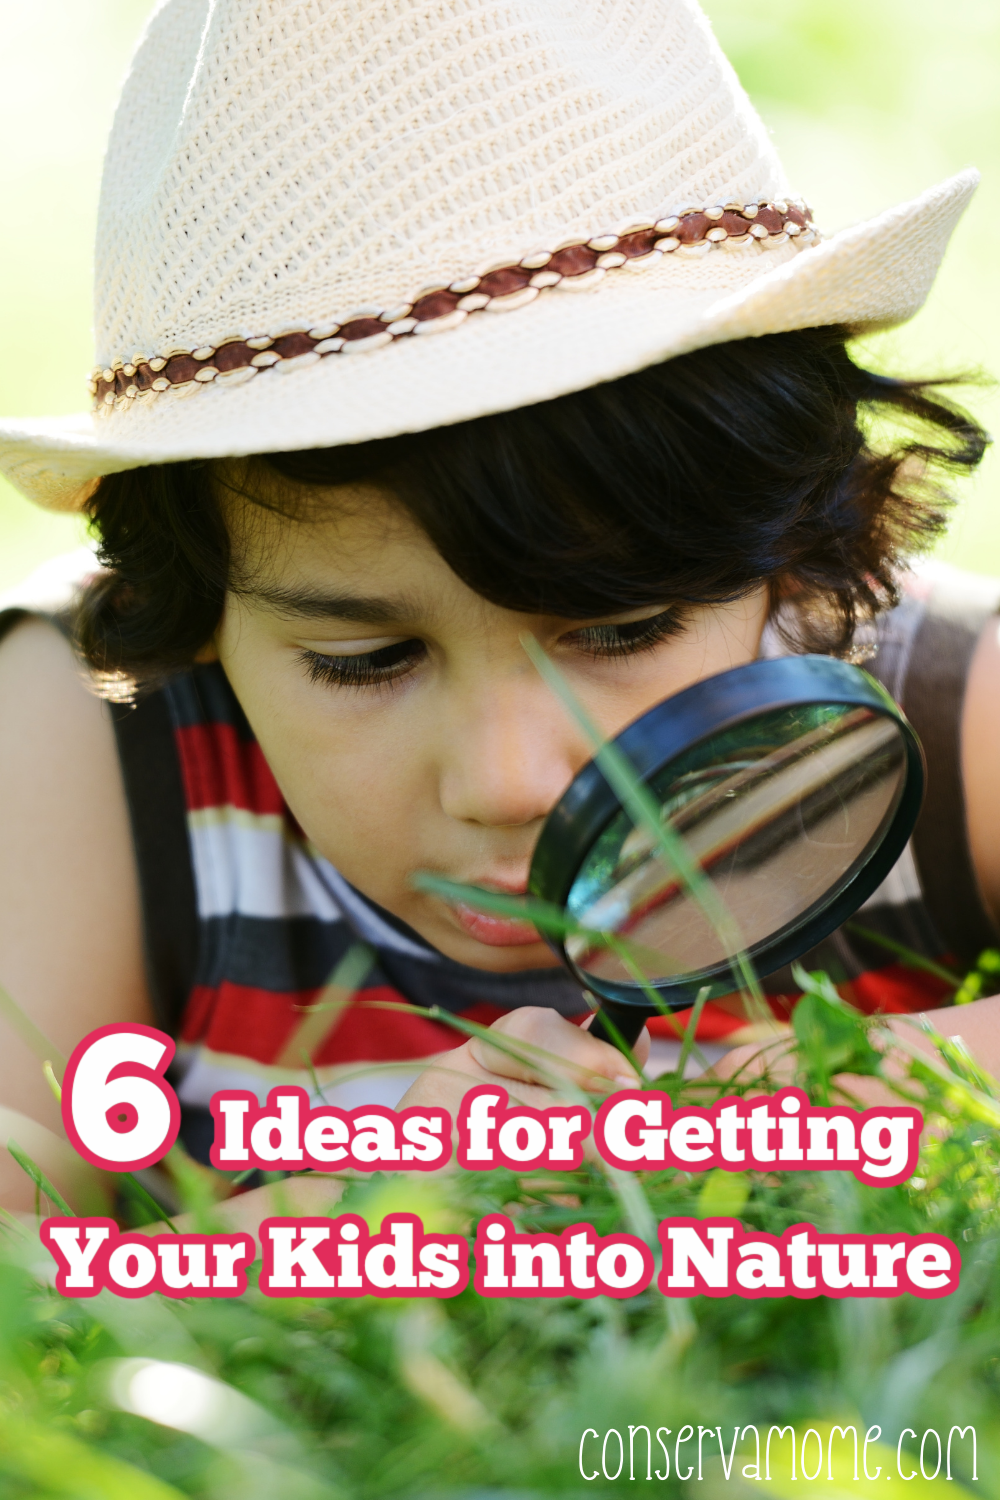 6 Ideas for Getting Your Kids into Nature